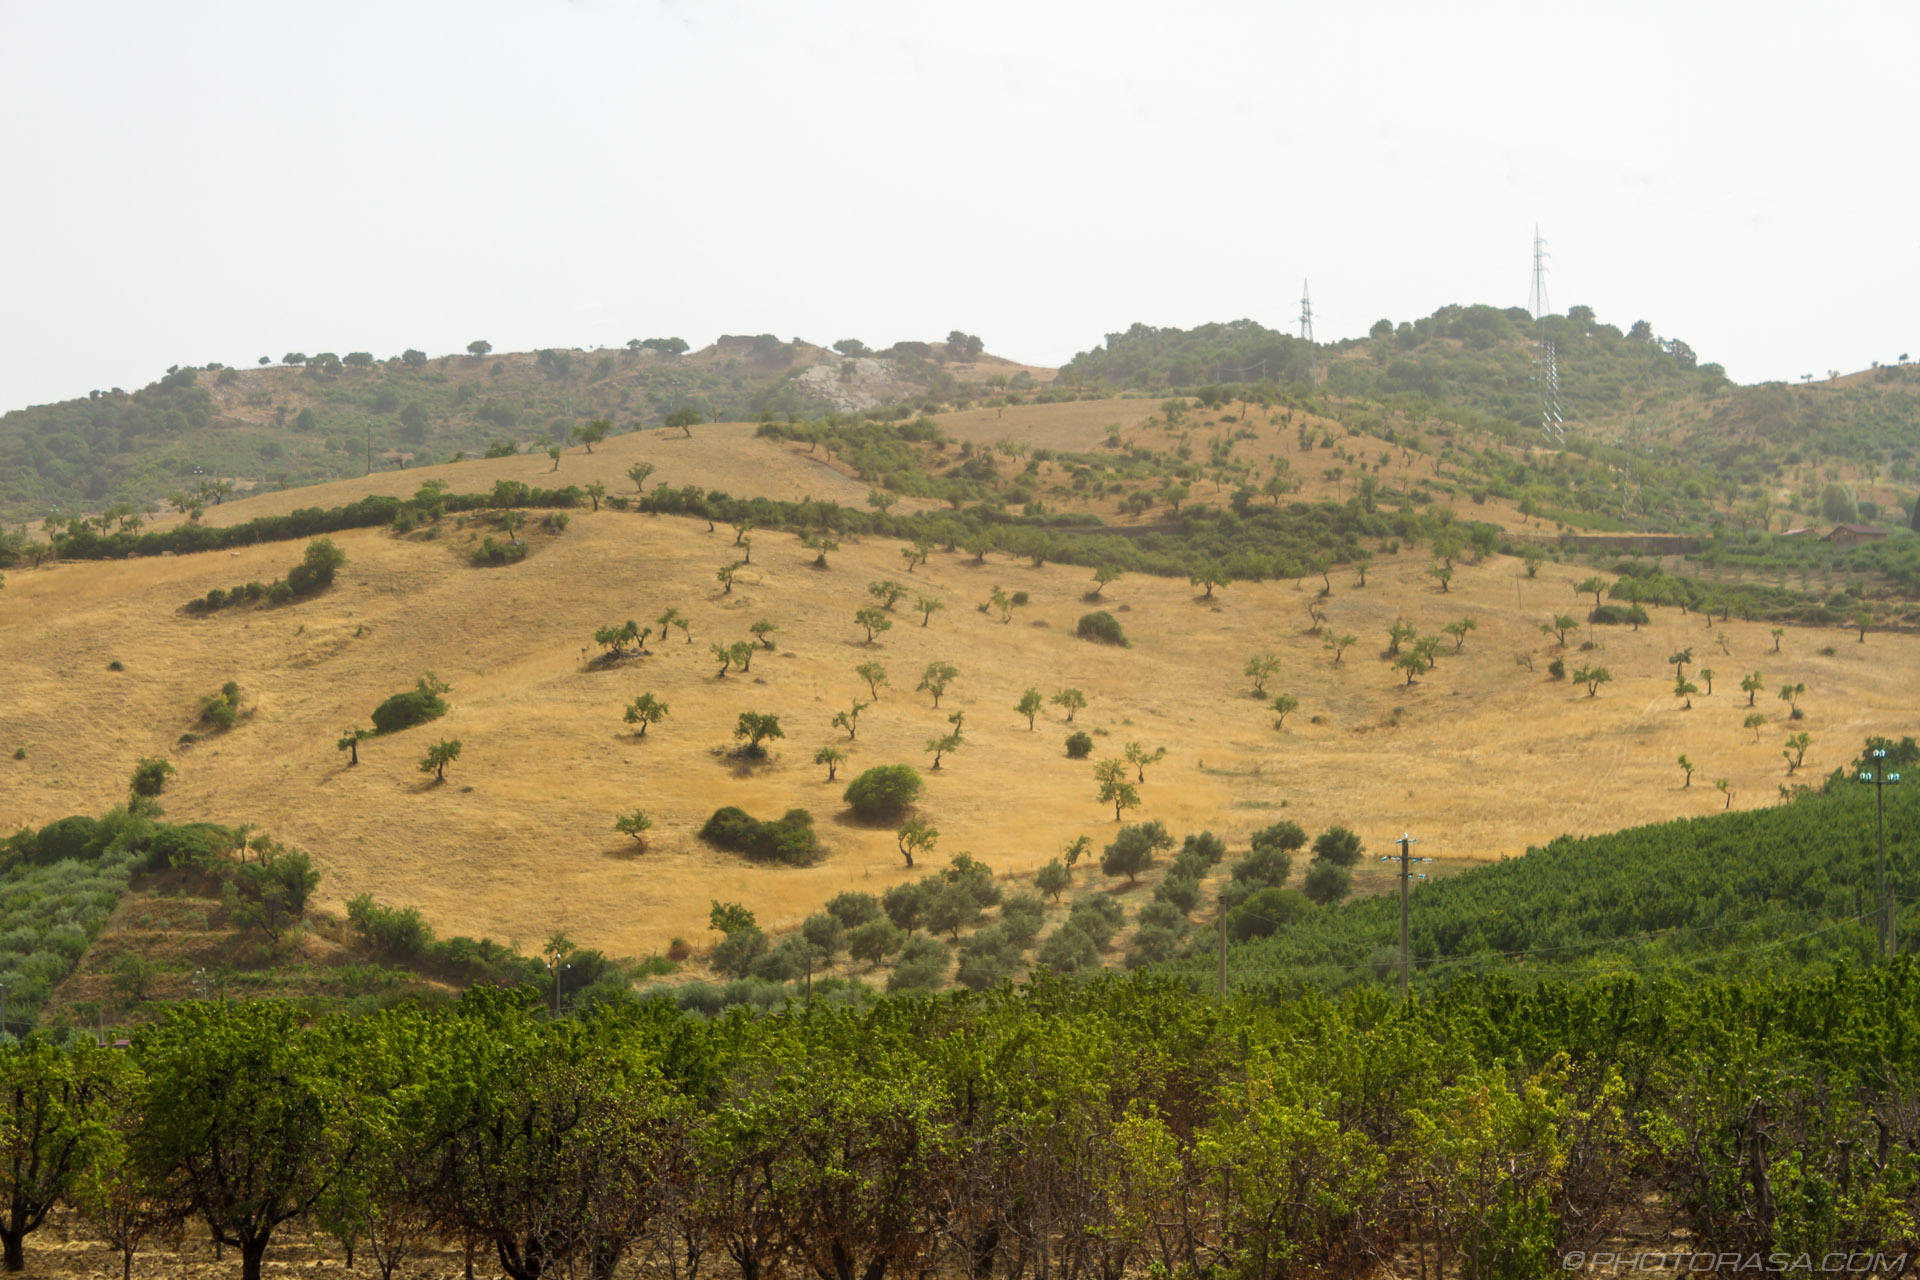 http://photorasa.com/sicilian-landscapes/trees-sprinkled-across-a-hillside/